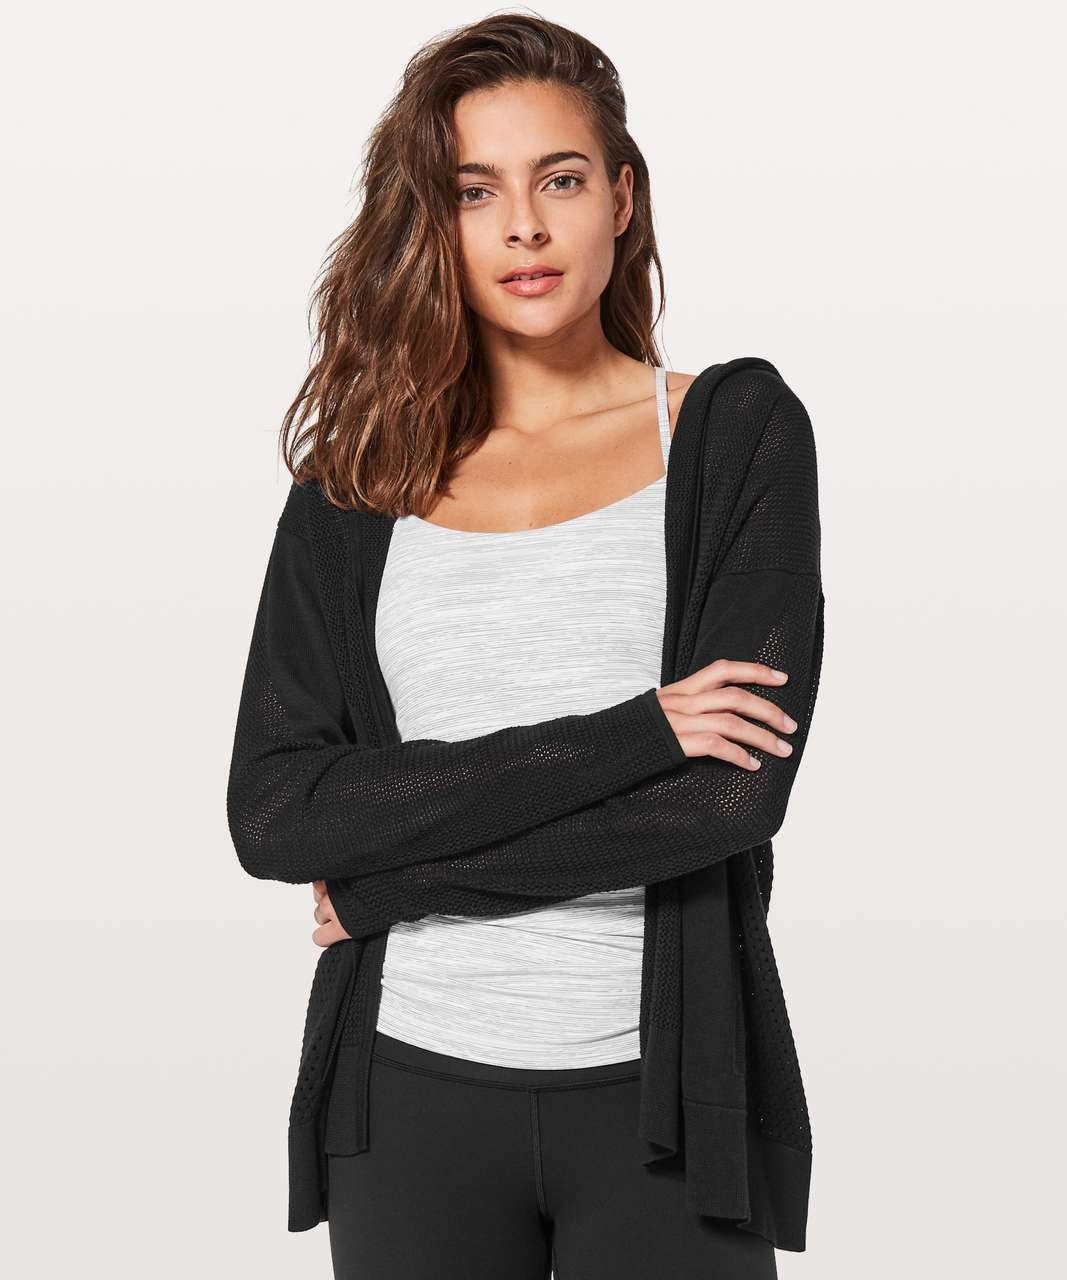 Lululemon Still Movement Wrap - Black